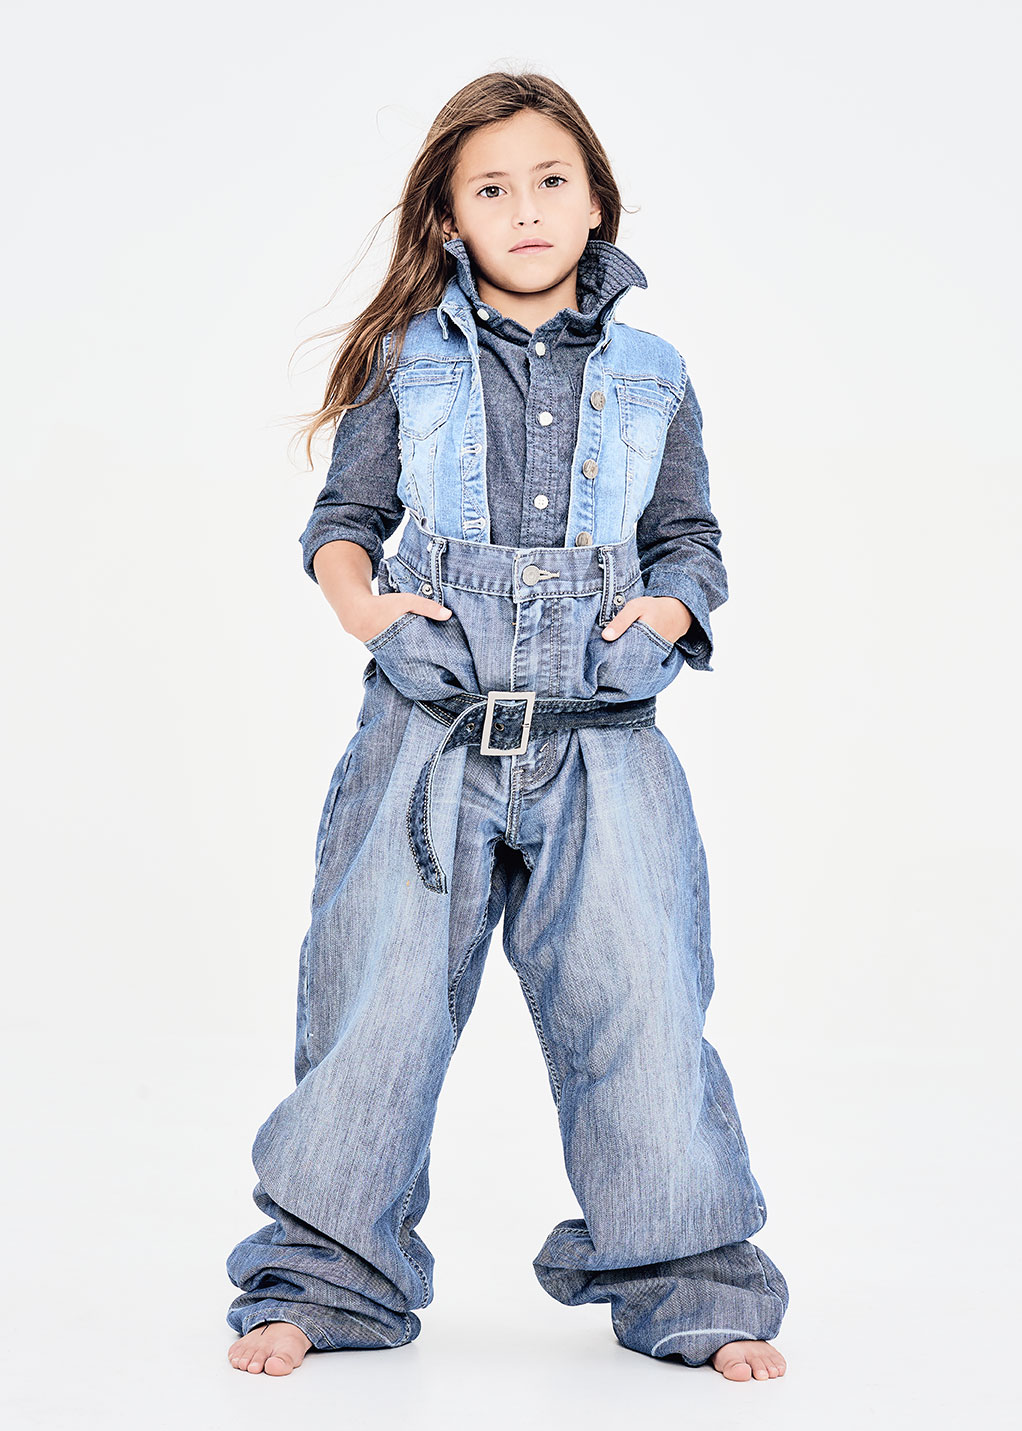 Cat-Larsen-Denim-Series-10